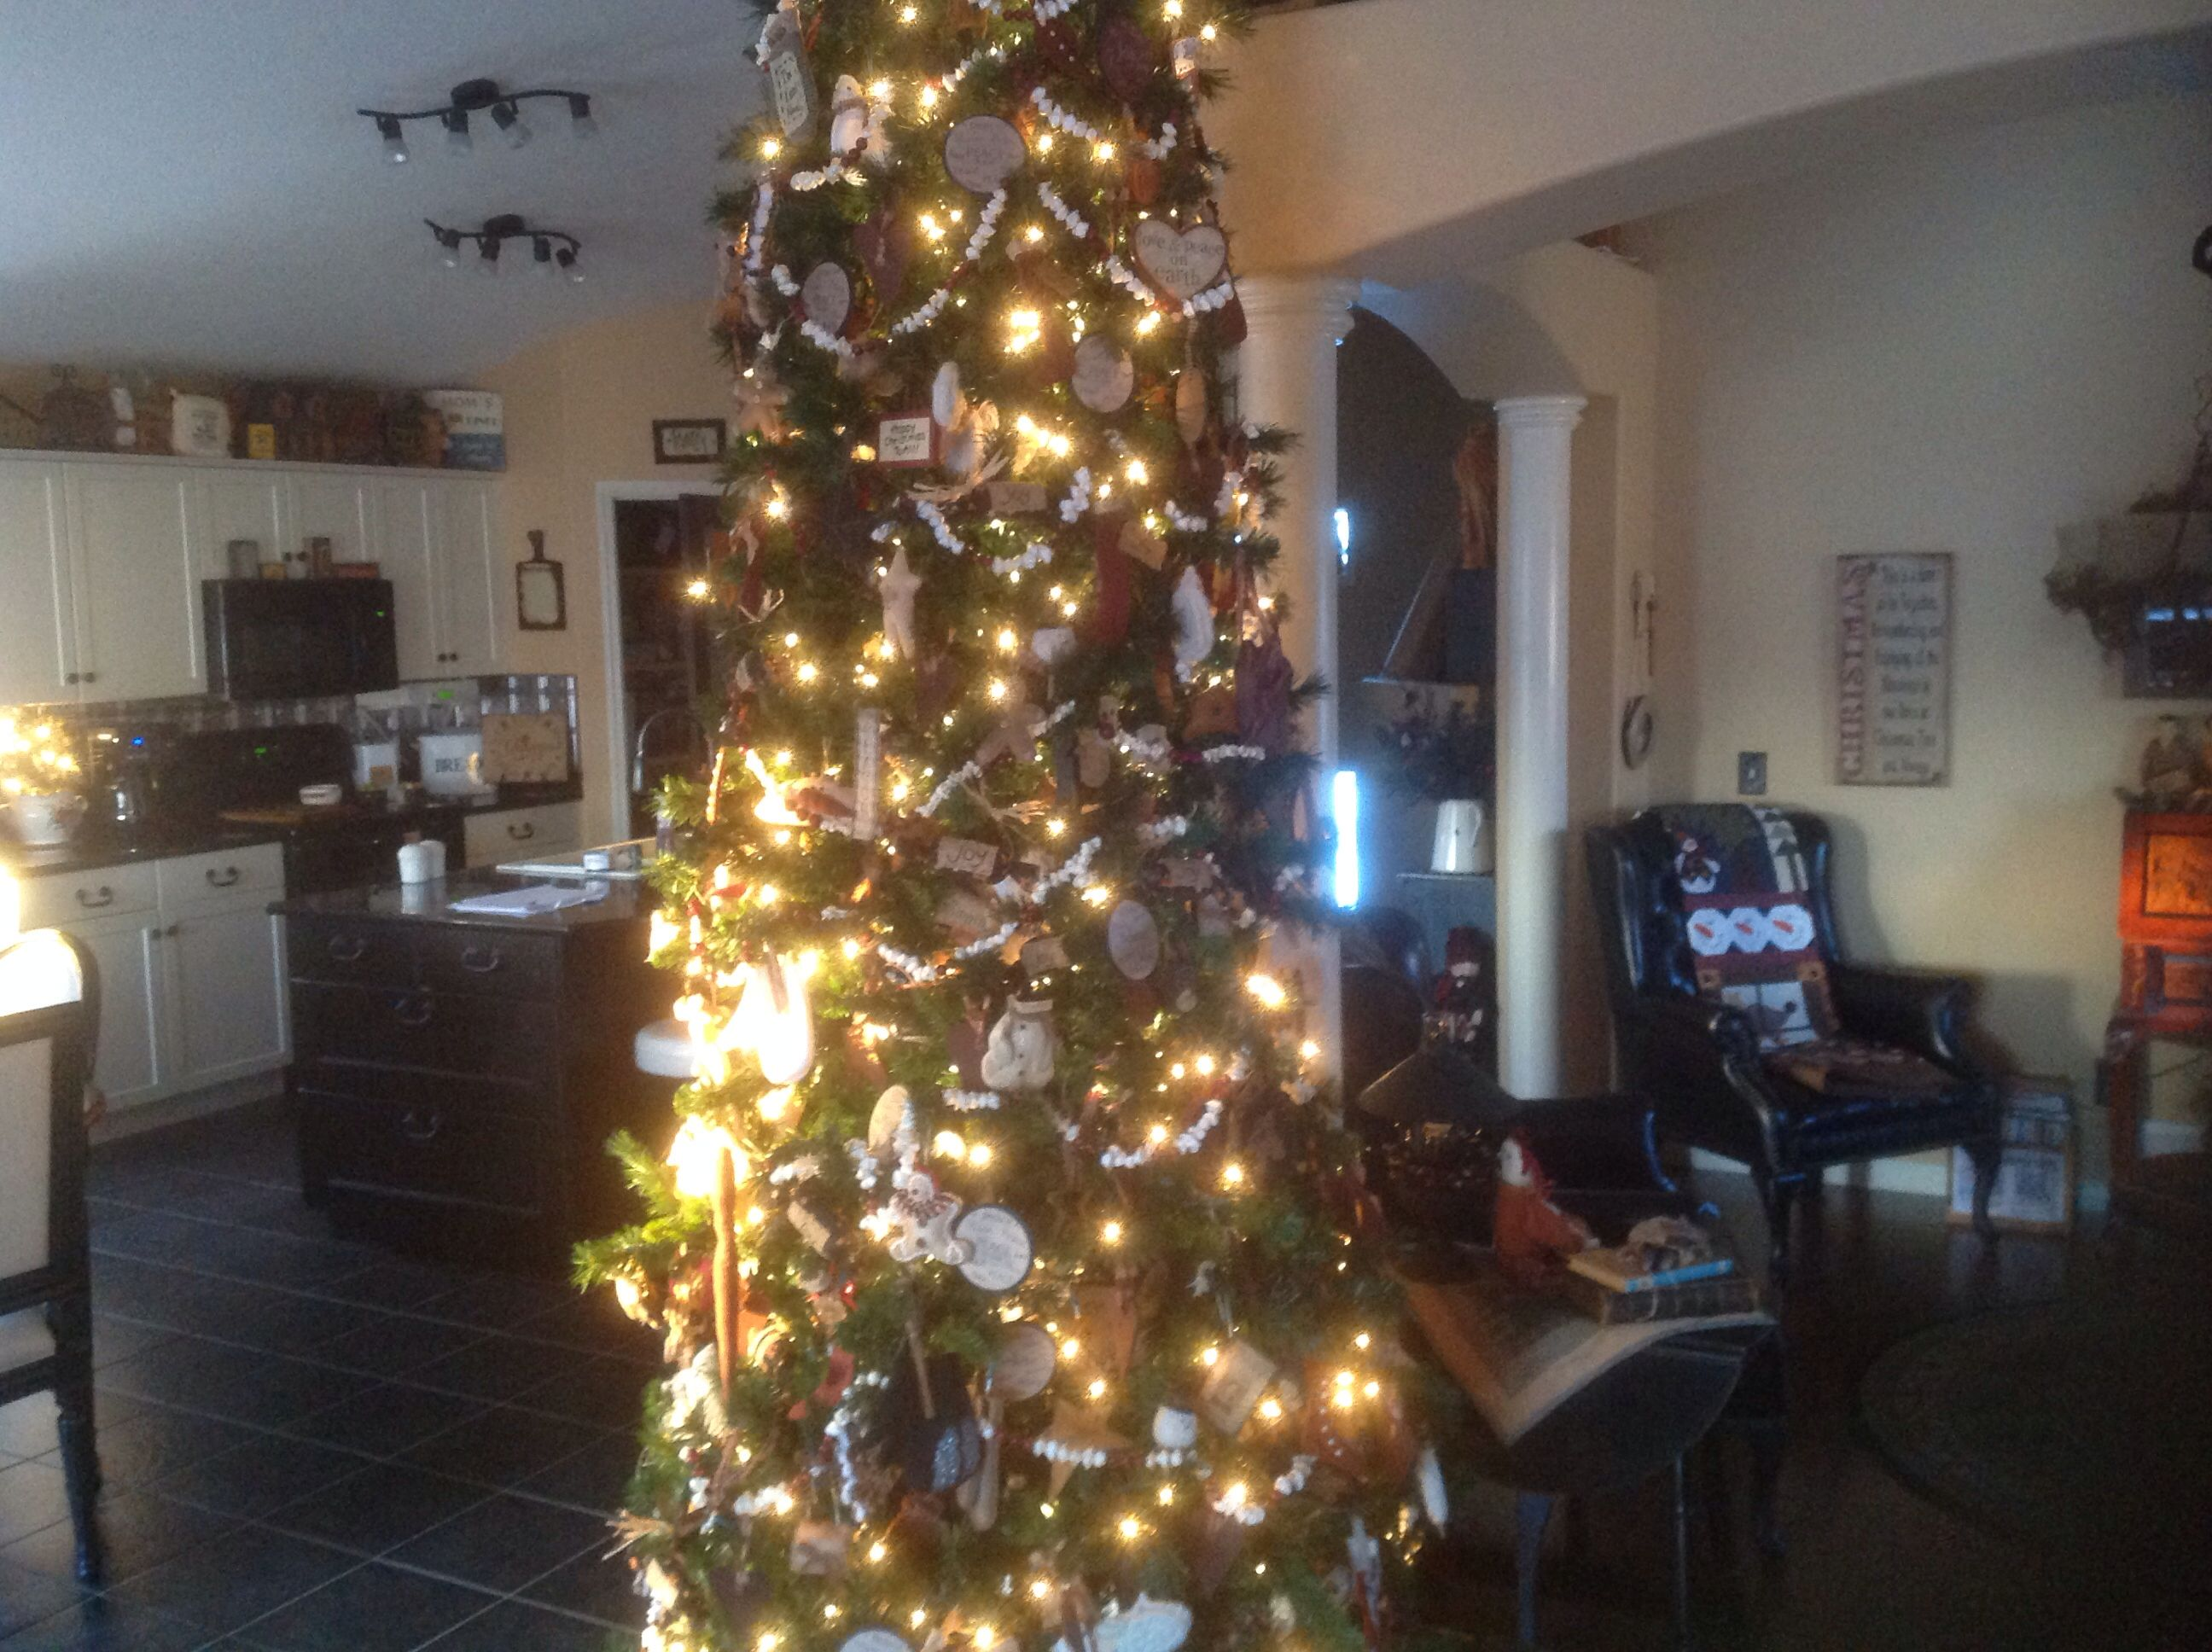 12 foot tree with over 300 homemade ornaments